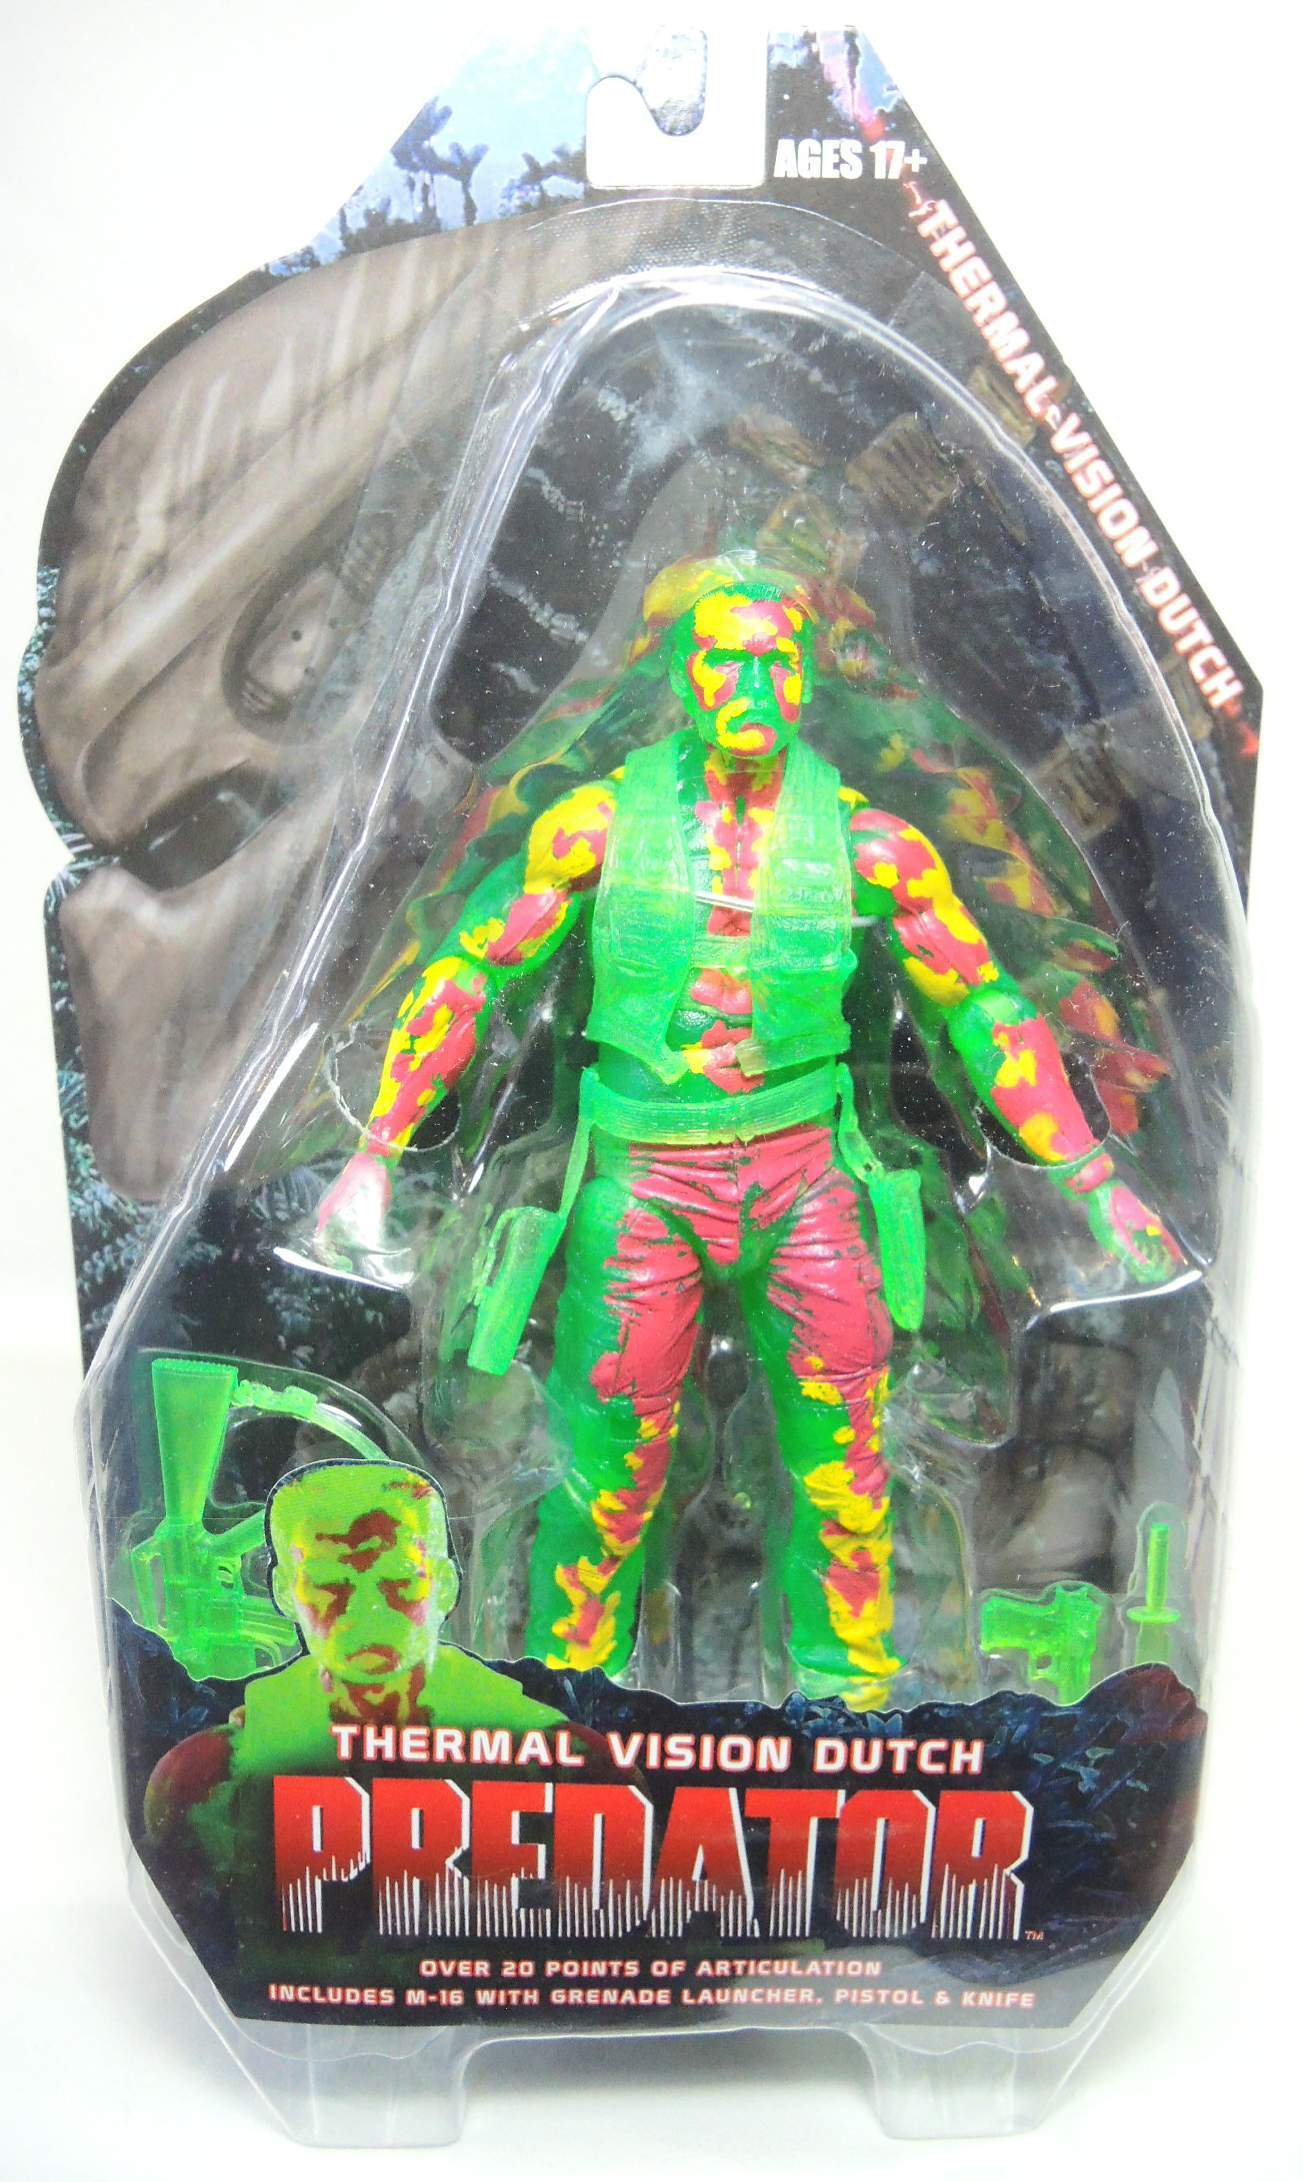 NECA Predator Series 11 - Thermal Vision Dutch 7 inch figure NECA, Predators, Scifi, 2014, scifi, movie